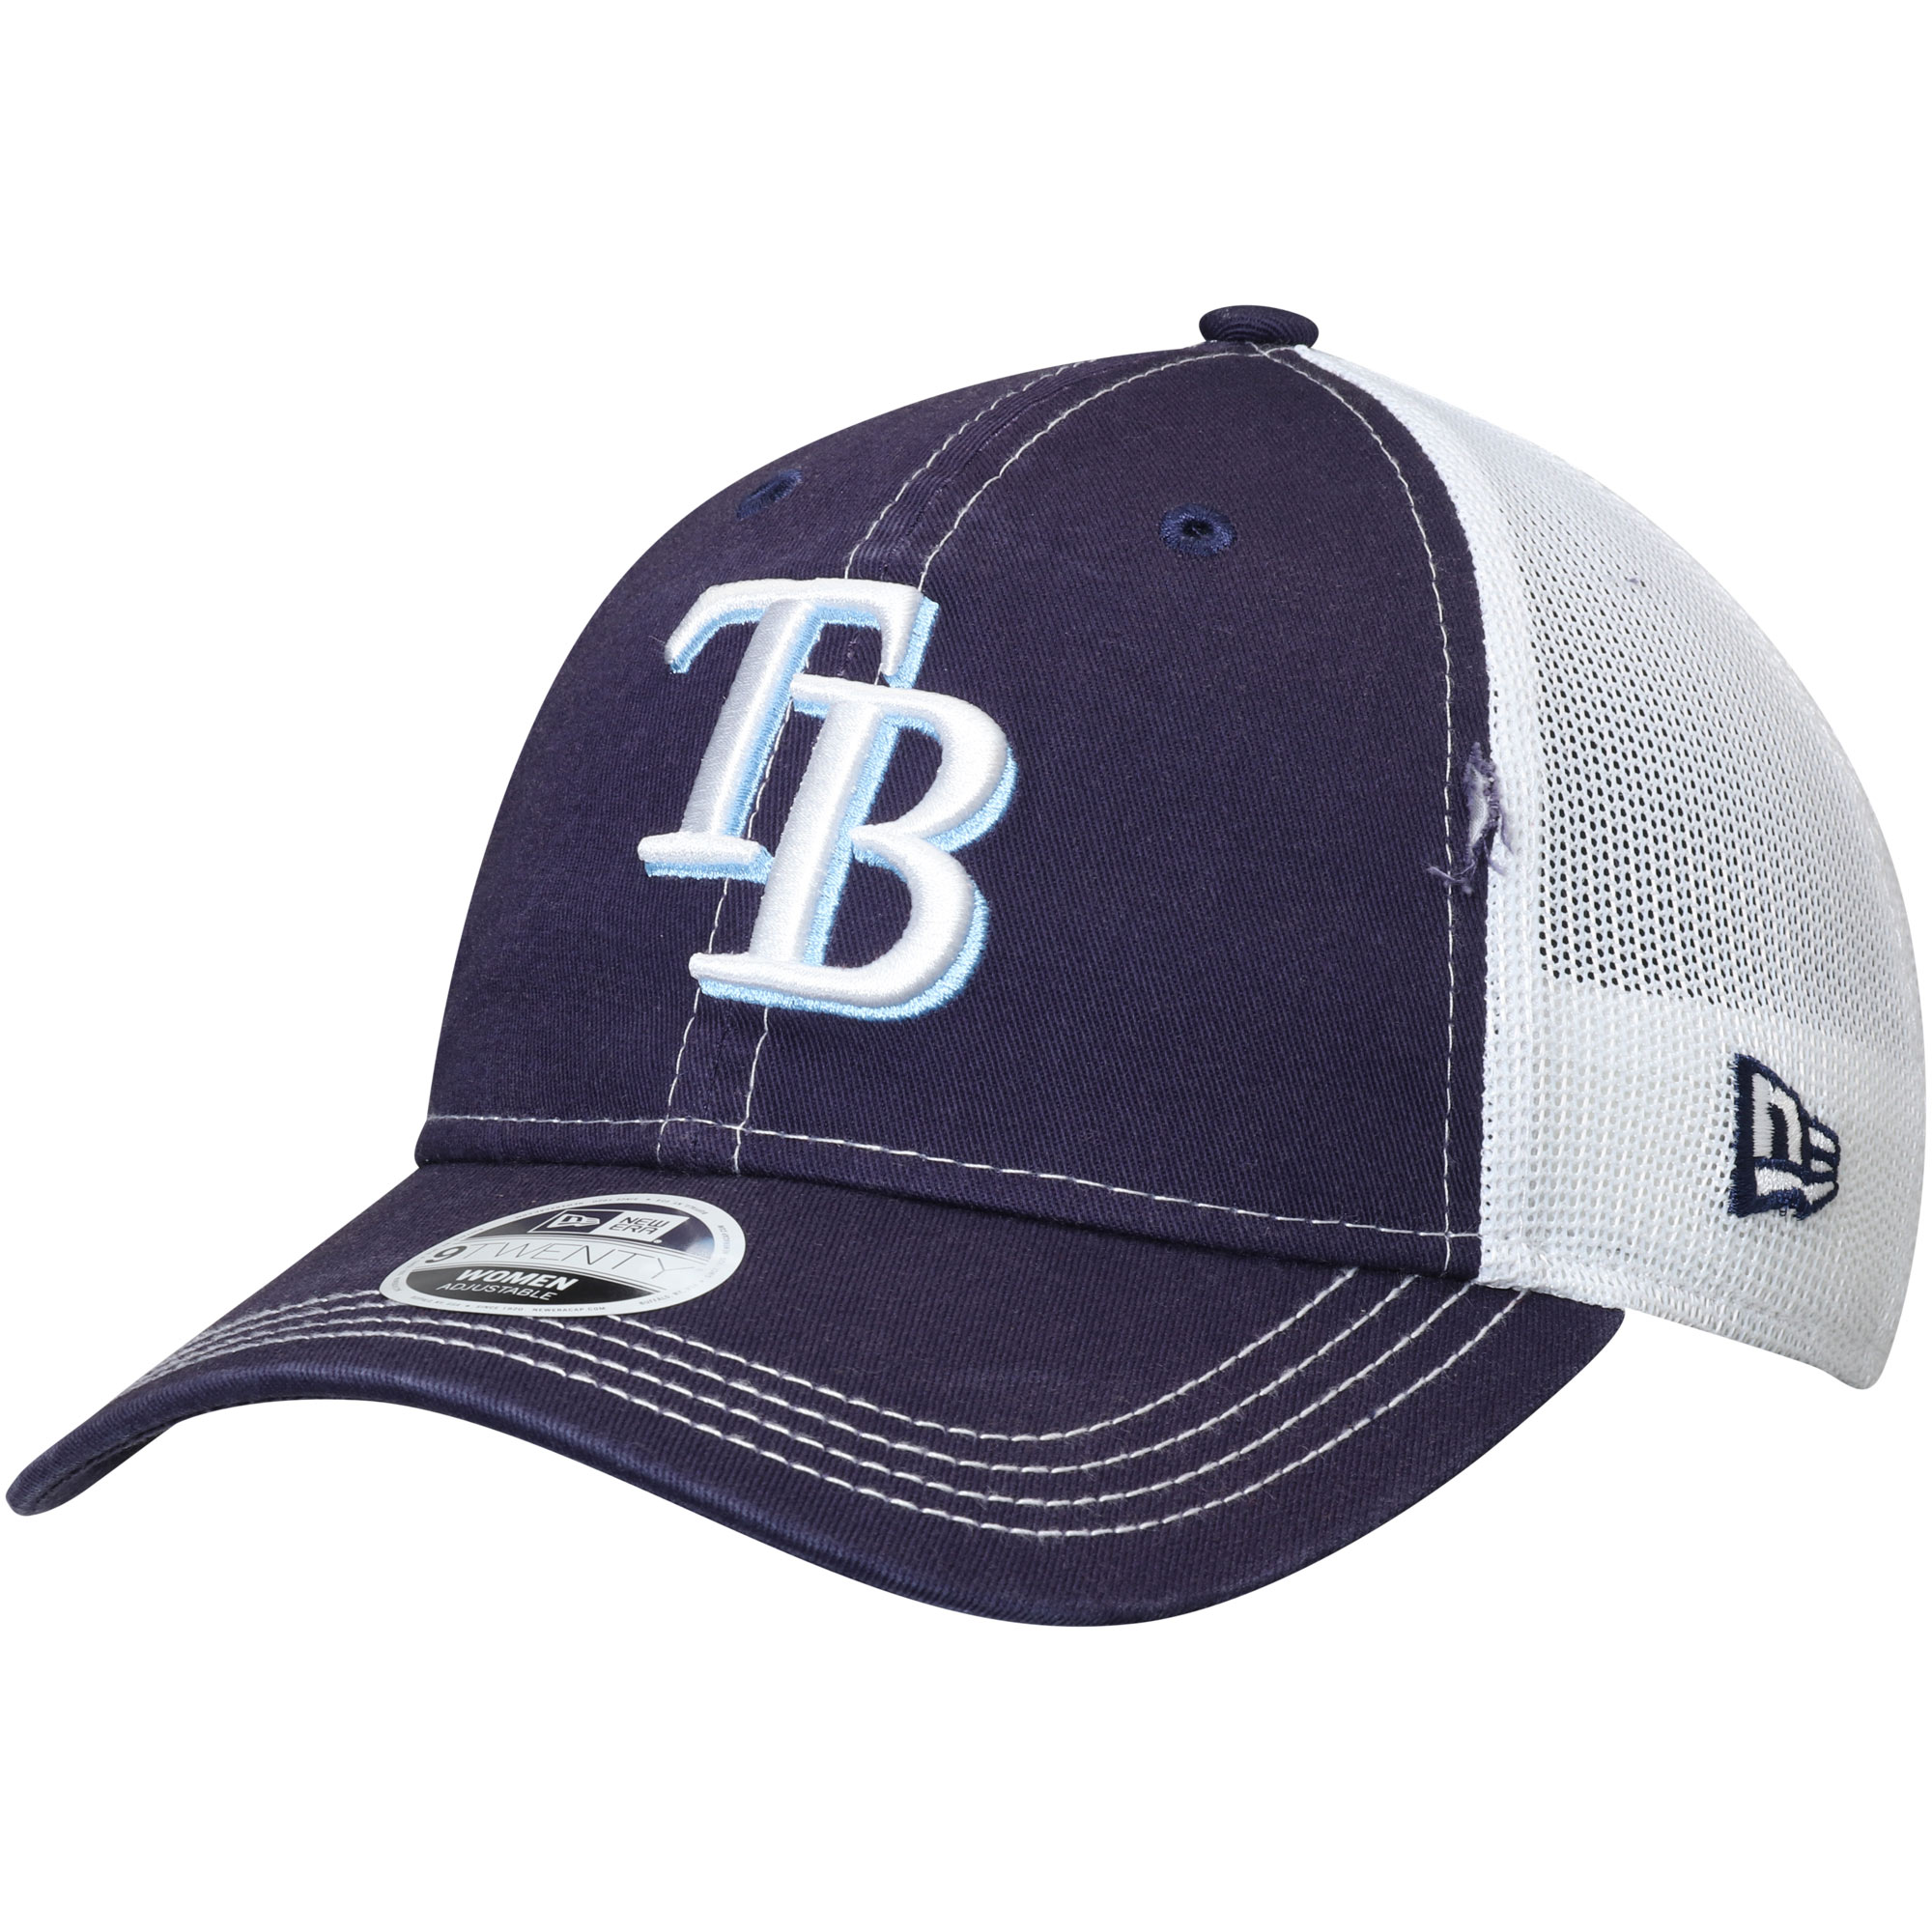 Tampa Bay Rays New Era Women's Spirited 9TWENTY Adjustable Hat - Navy - OSFA